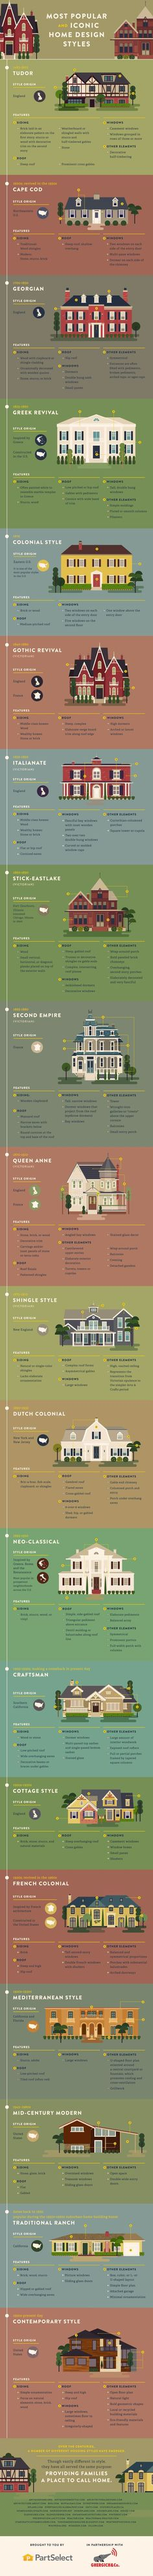 All about every single popular and iconic home exterior style. Have you ever wondered what kind of house you live in? Check out this visual guide to learn all about your house's history, design style, and characteristics. Visit In The New House Designs to see the full guide.: